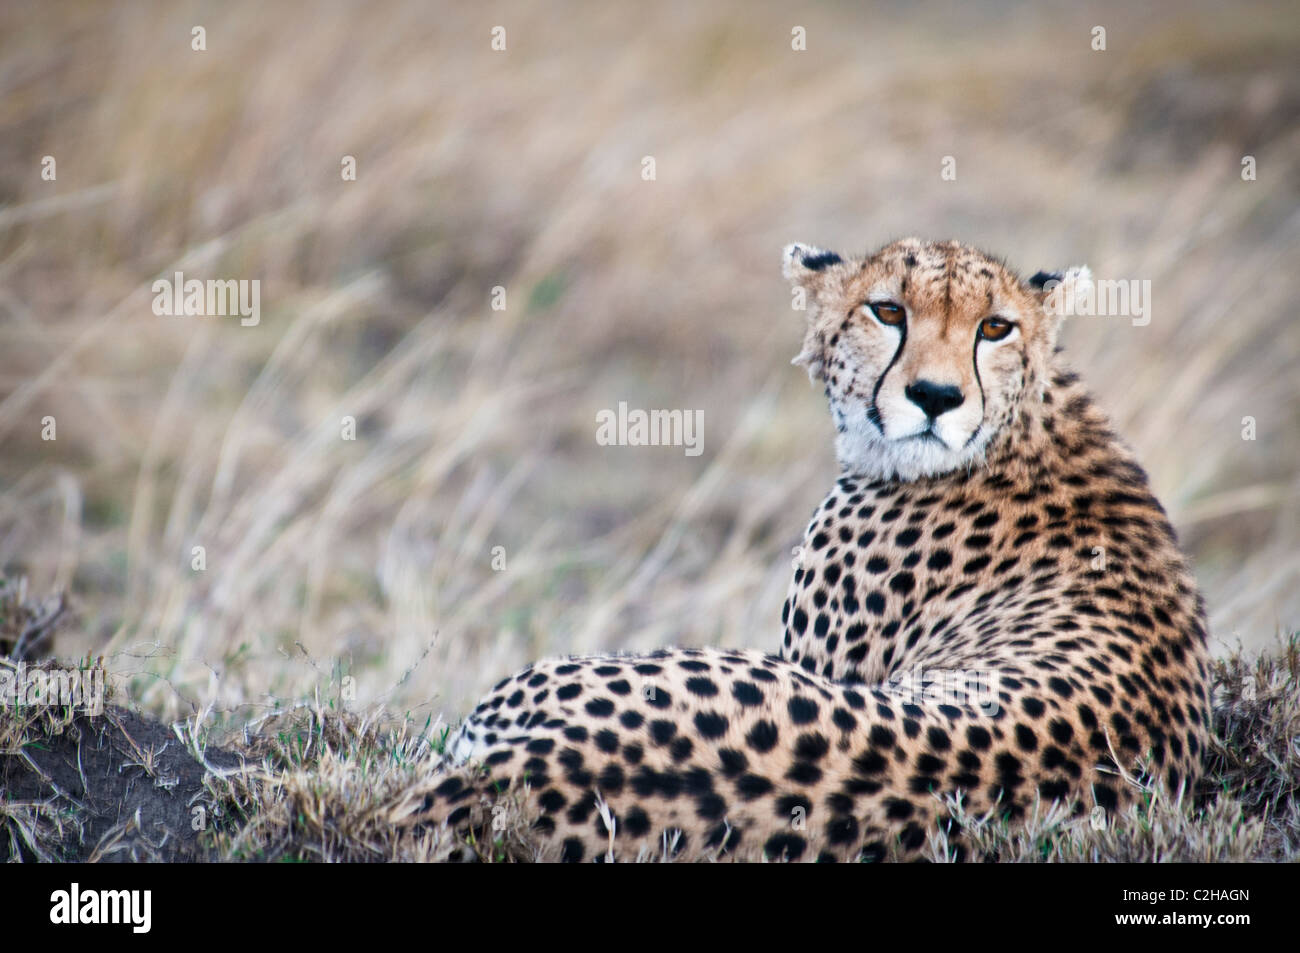 Cheetah, Acinonyx  jubatus, Seeking prey, Masai Mara National Reserve, Kenya, Africa - Stock Image